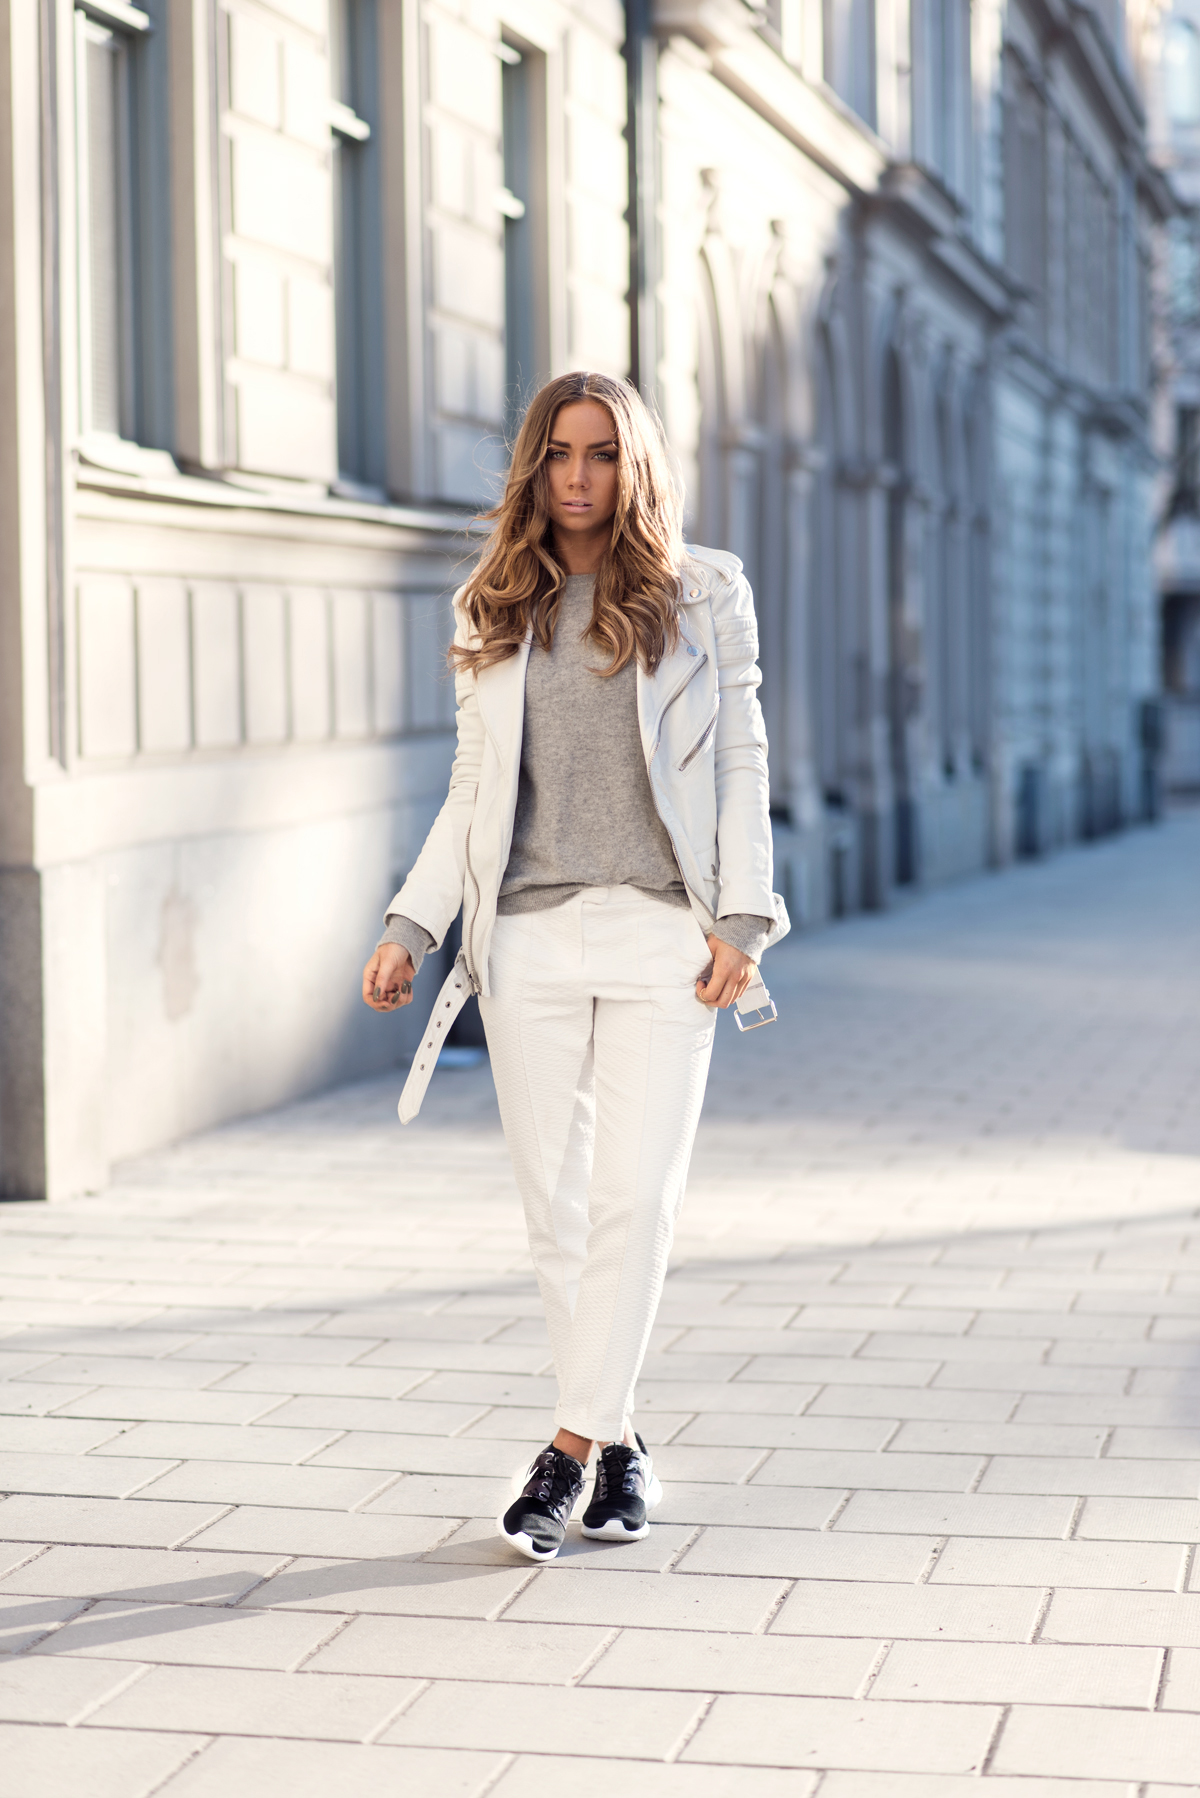 Lisa Olsson is wearing creme pants from Topshop, Nike sneakers and a BLK DNM jacket